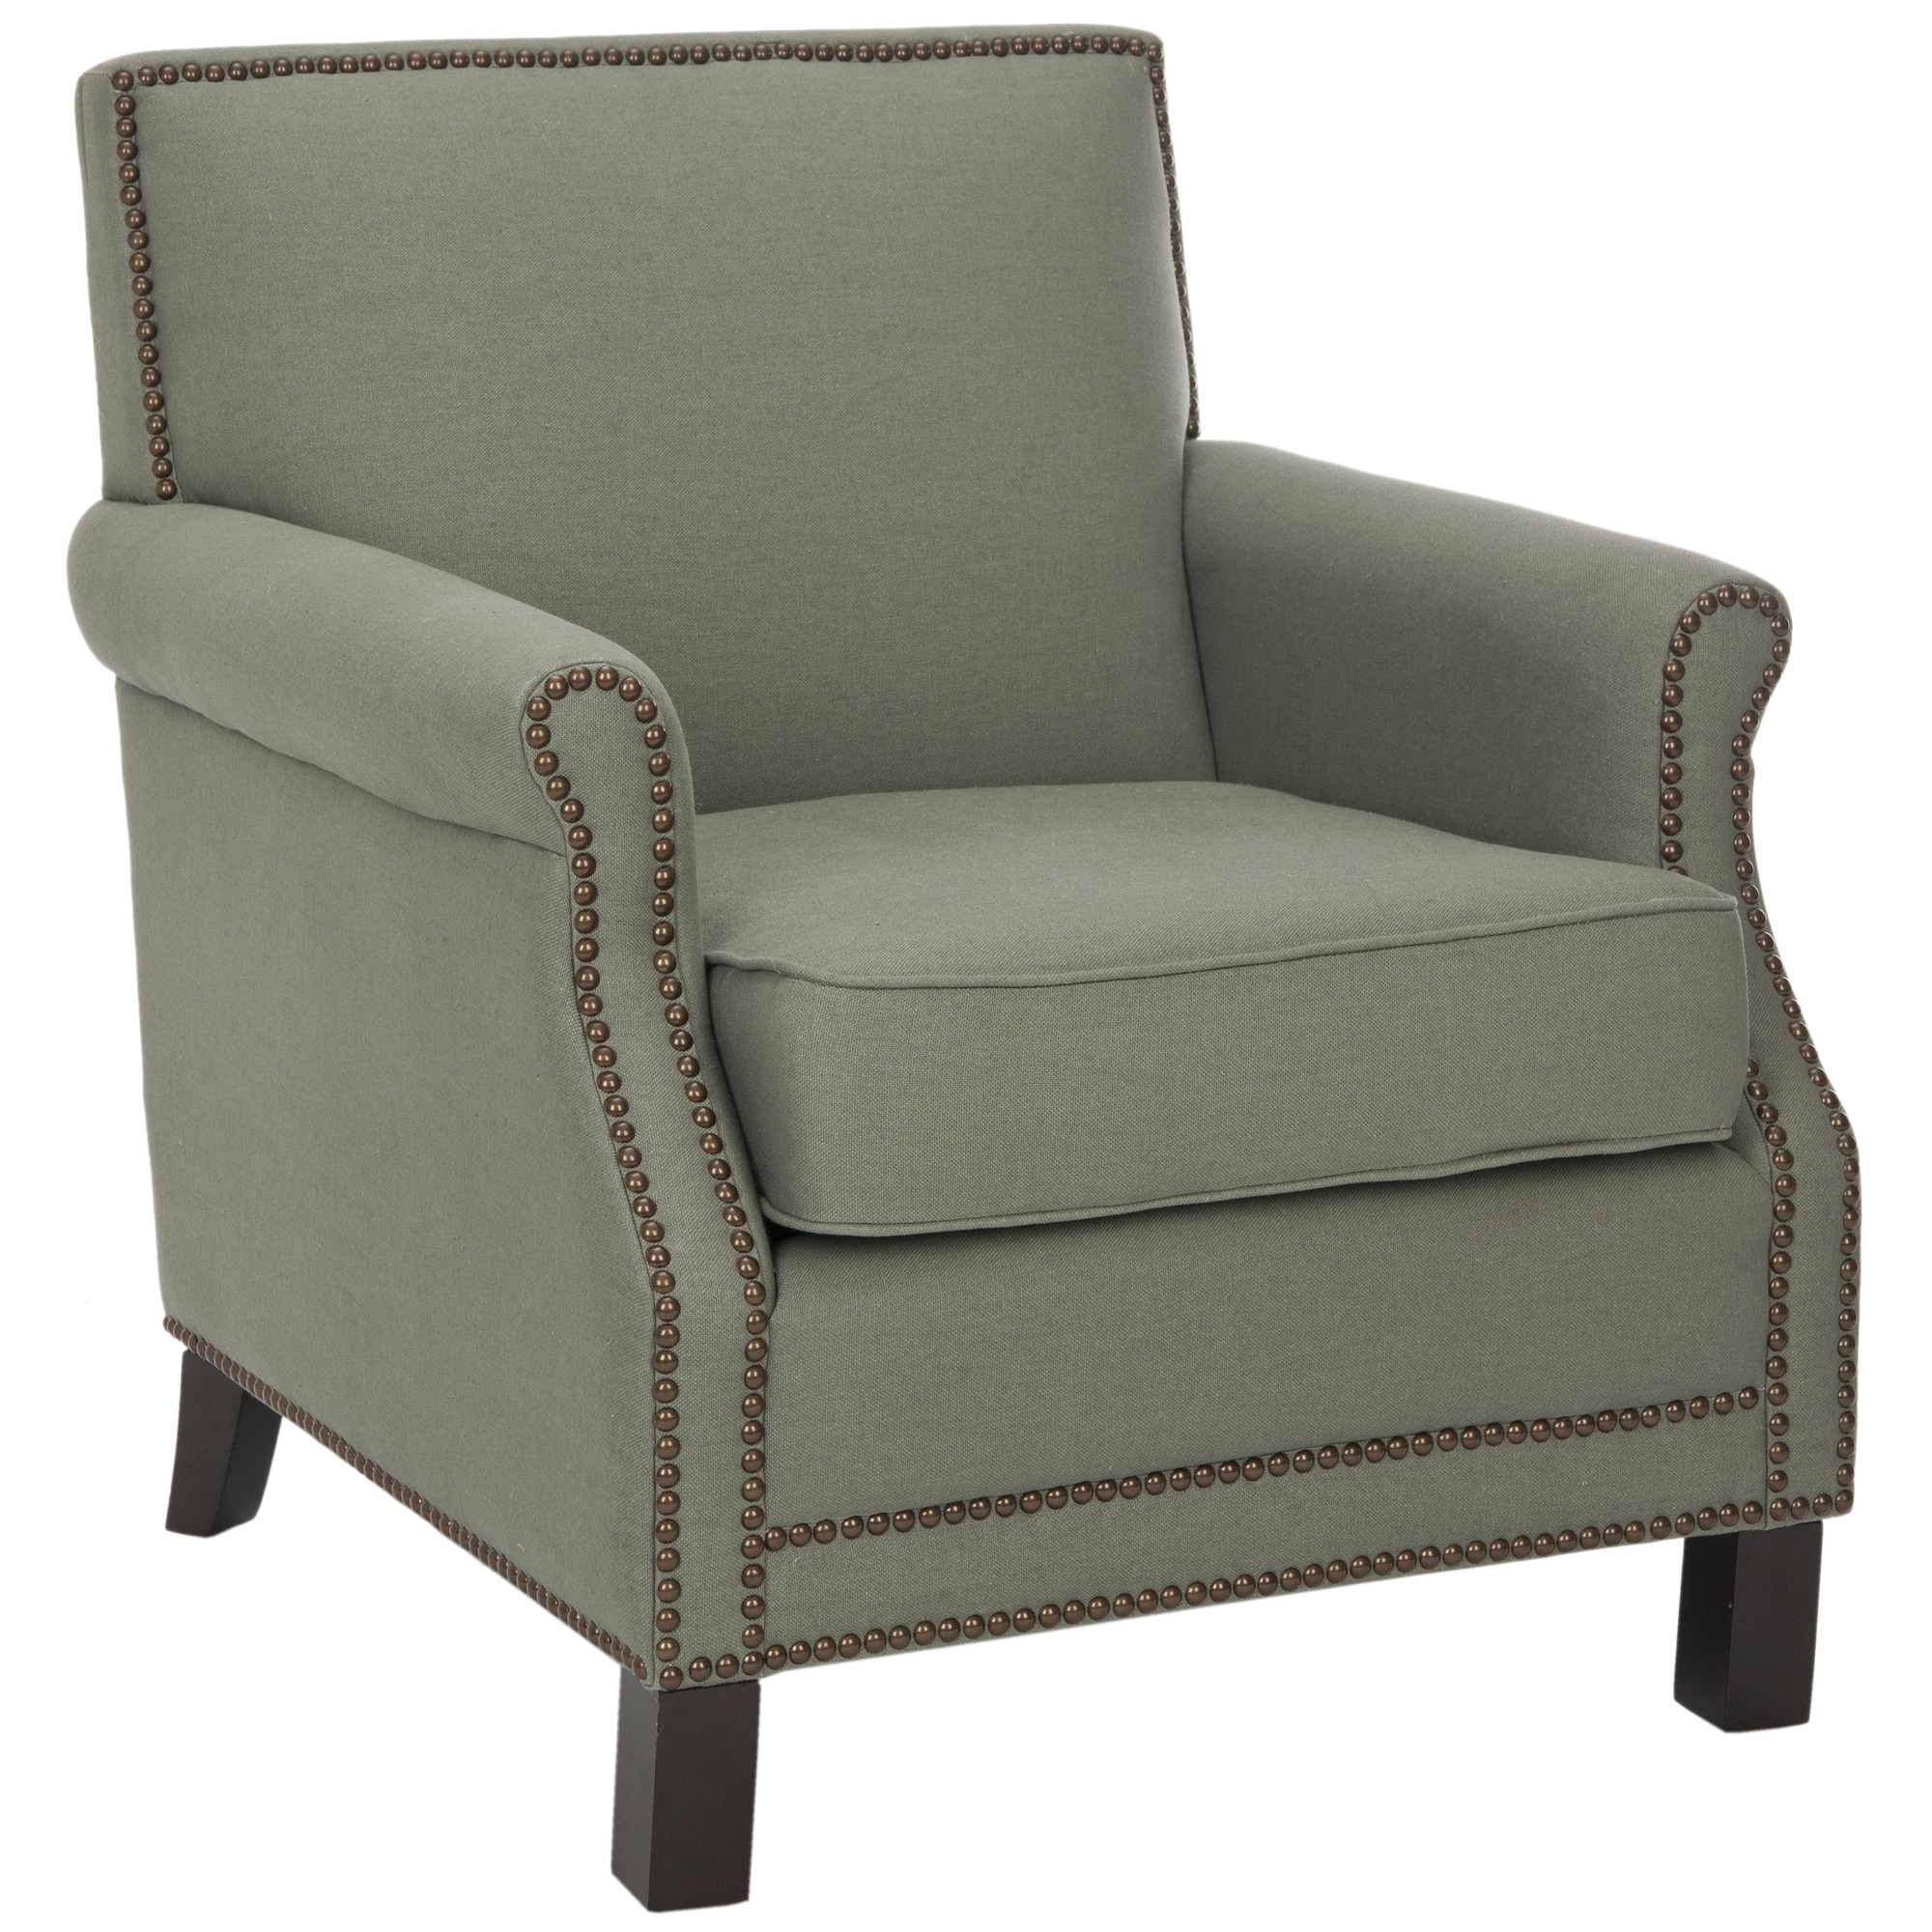 Safavieh Mansfield Grey Club Chair by Overstock